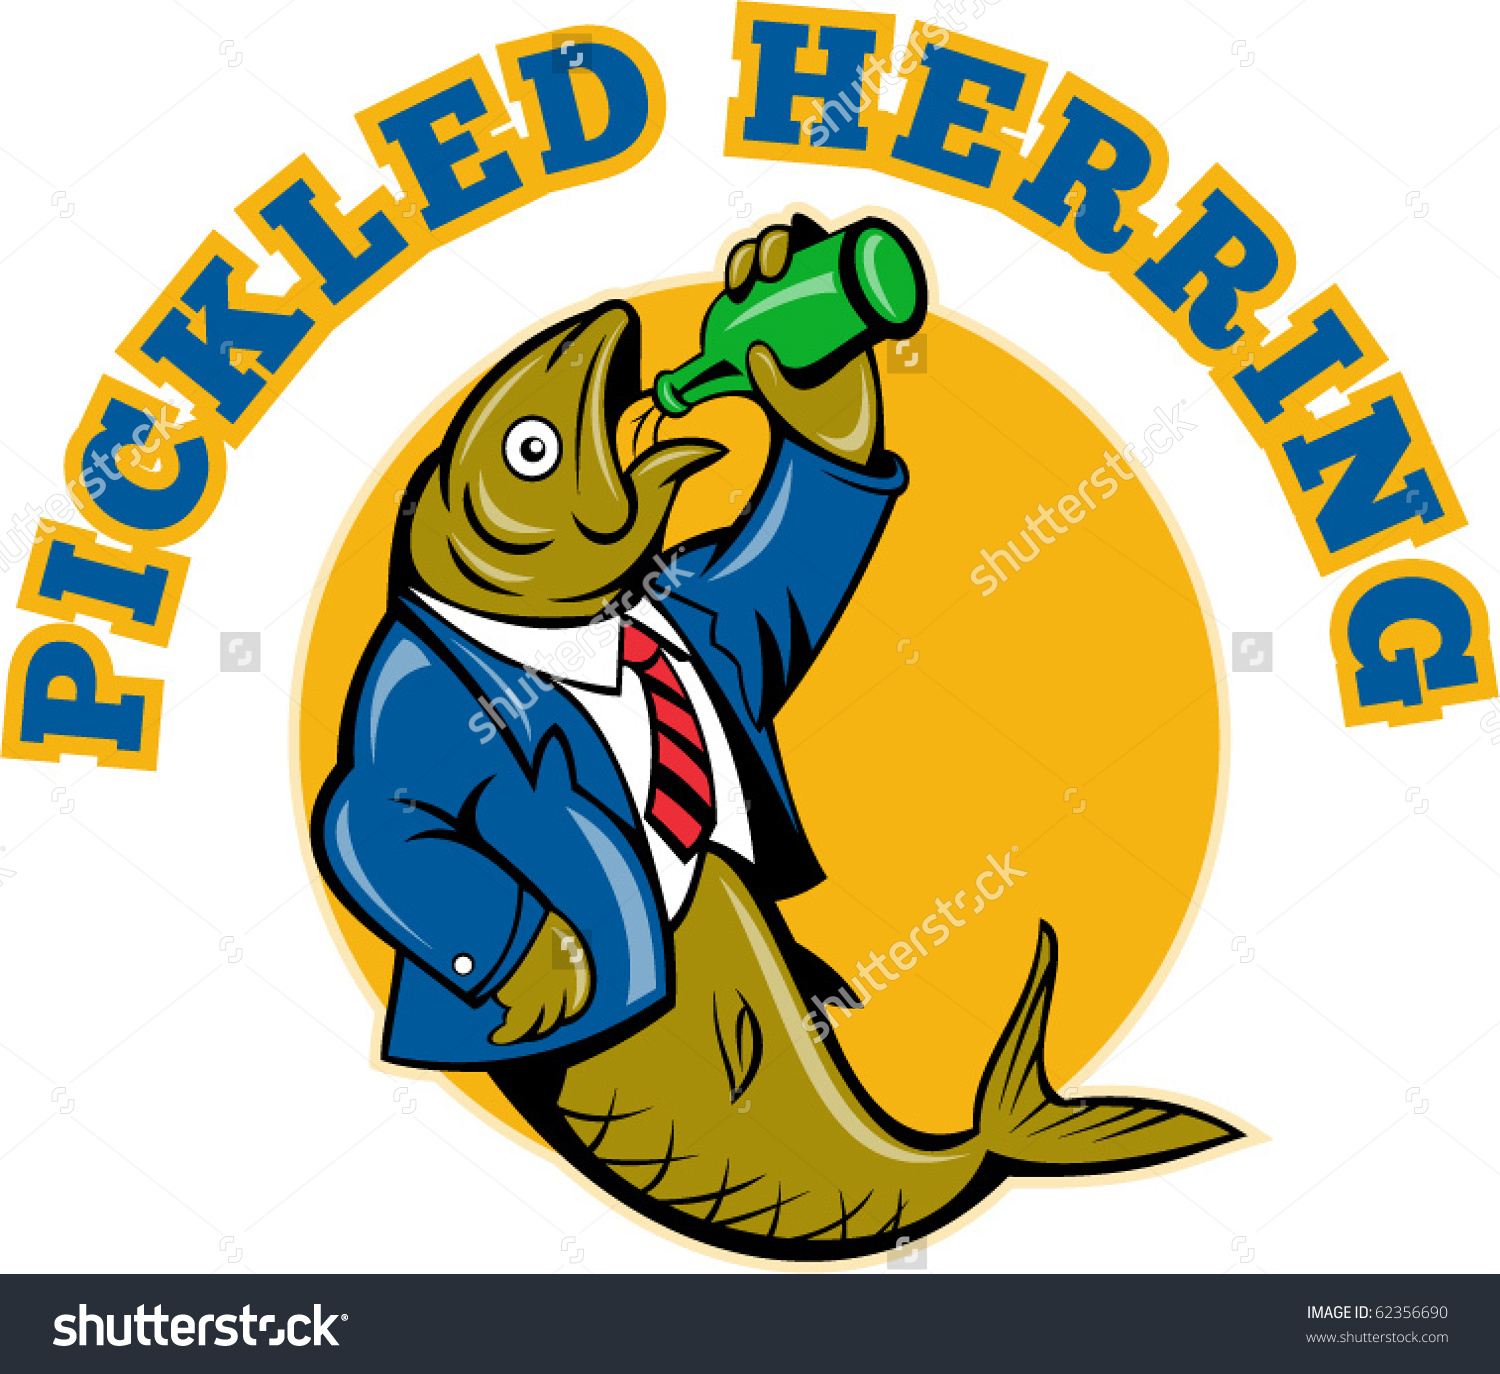 Illustration Cartoon Herring Fish Business Suit Stock Vector.